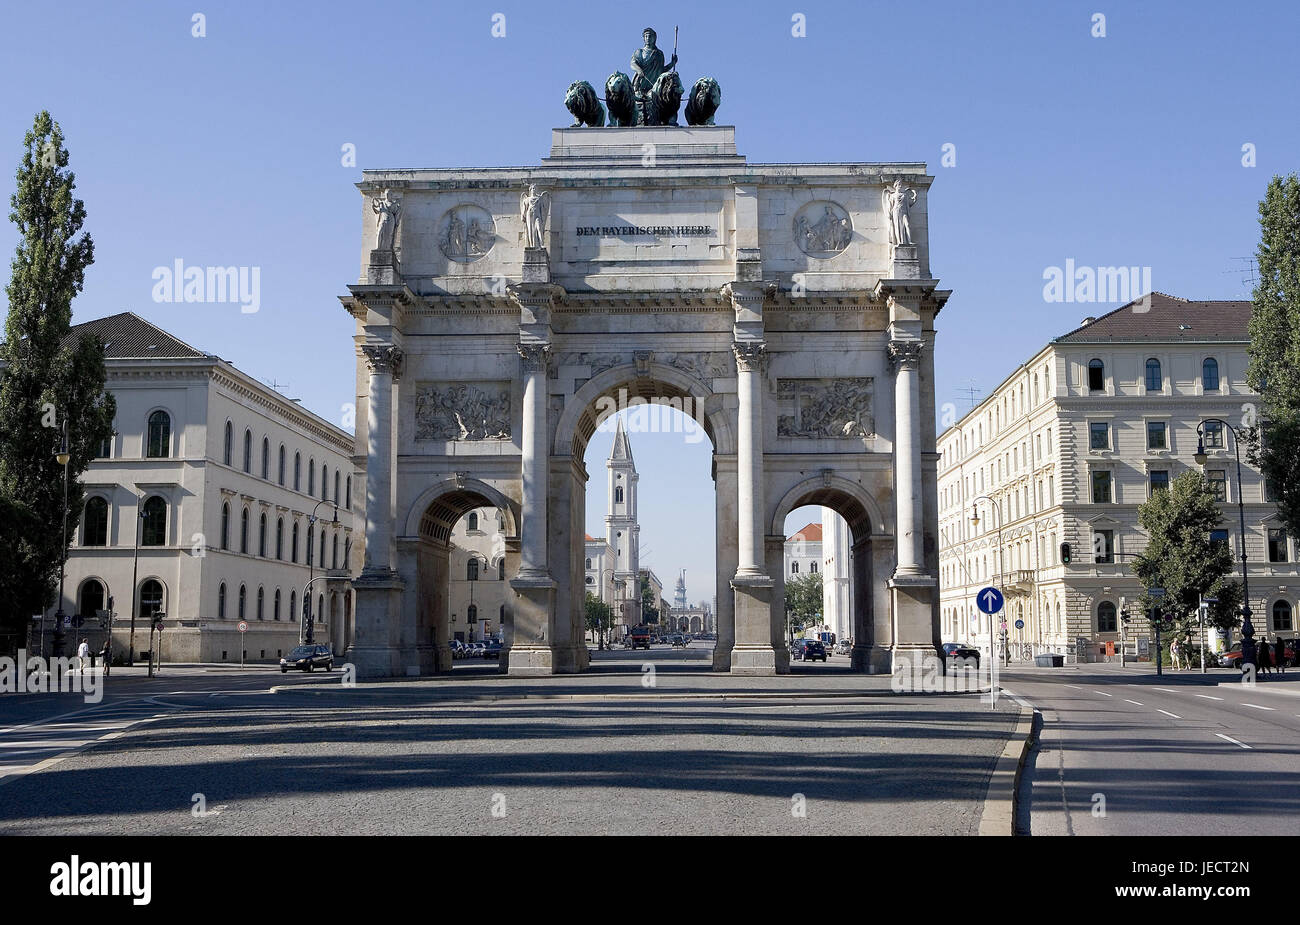 Germany, Bavaria, Munich, victory gate, South Germany, Upper Bavaria, gate, goal building, structure, building, - Stock Image